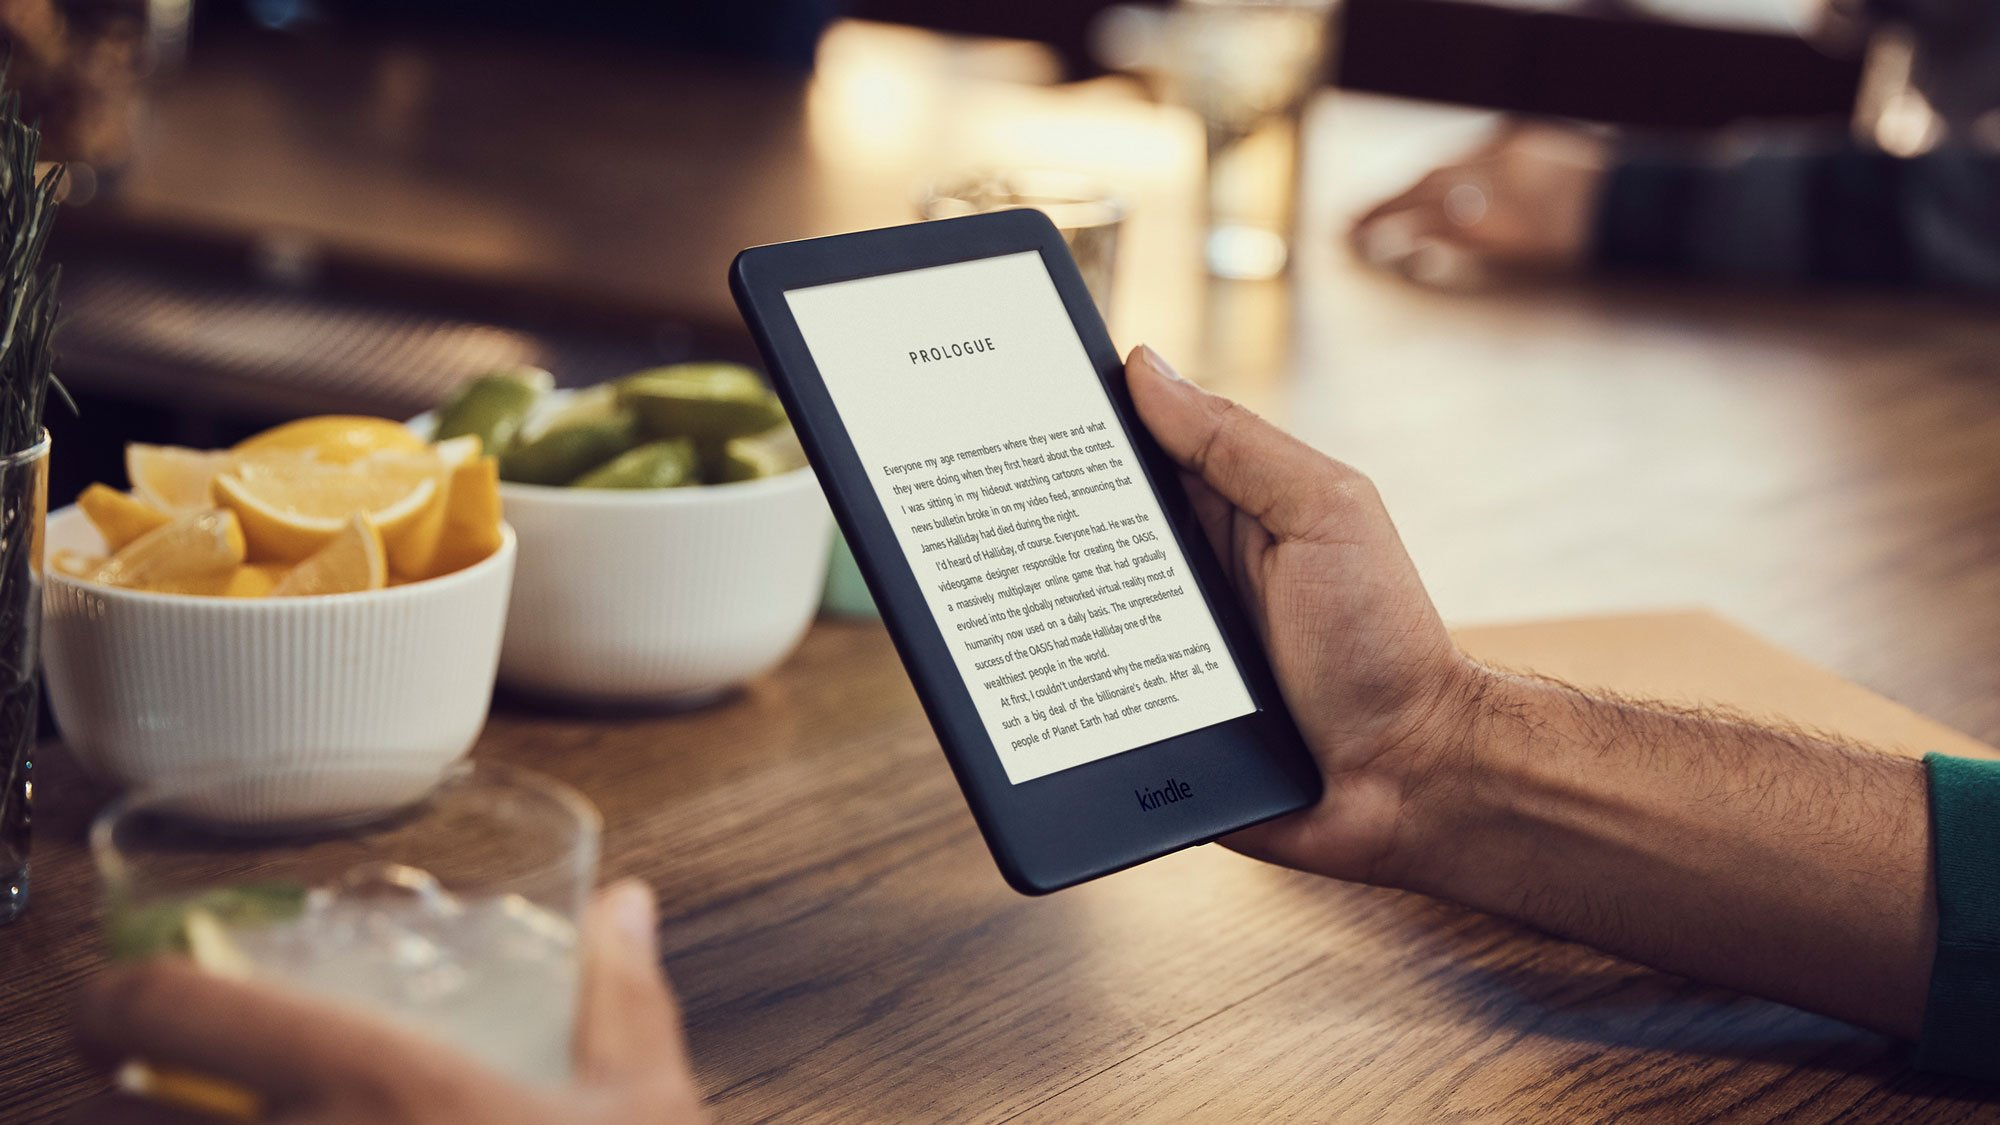 Amazon Kindle vs Paperwhite vs Oasis: Which Amazon ebook reader is